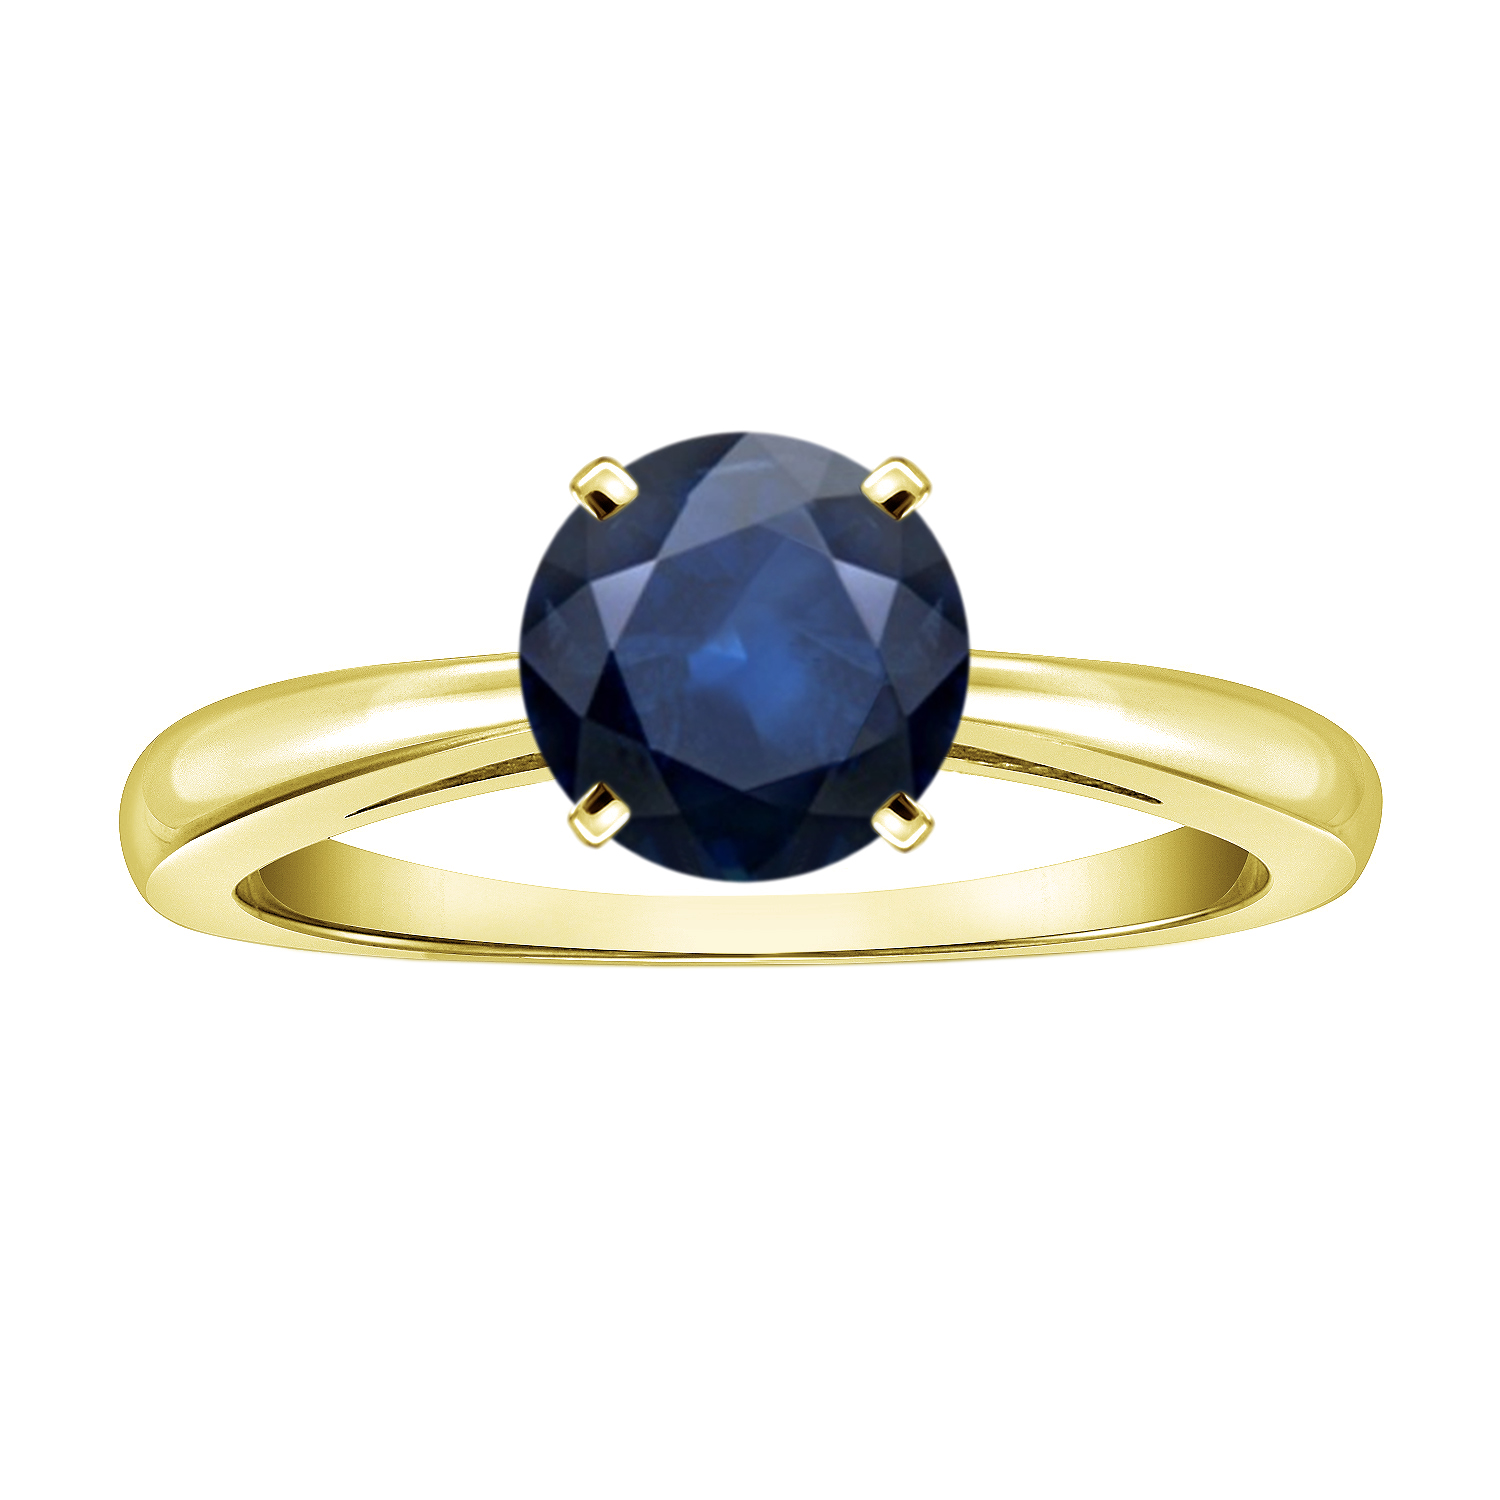 AMIE Blue Sapphire Solitaire Ring In 14K Yellow Gold